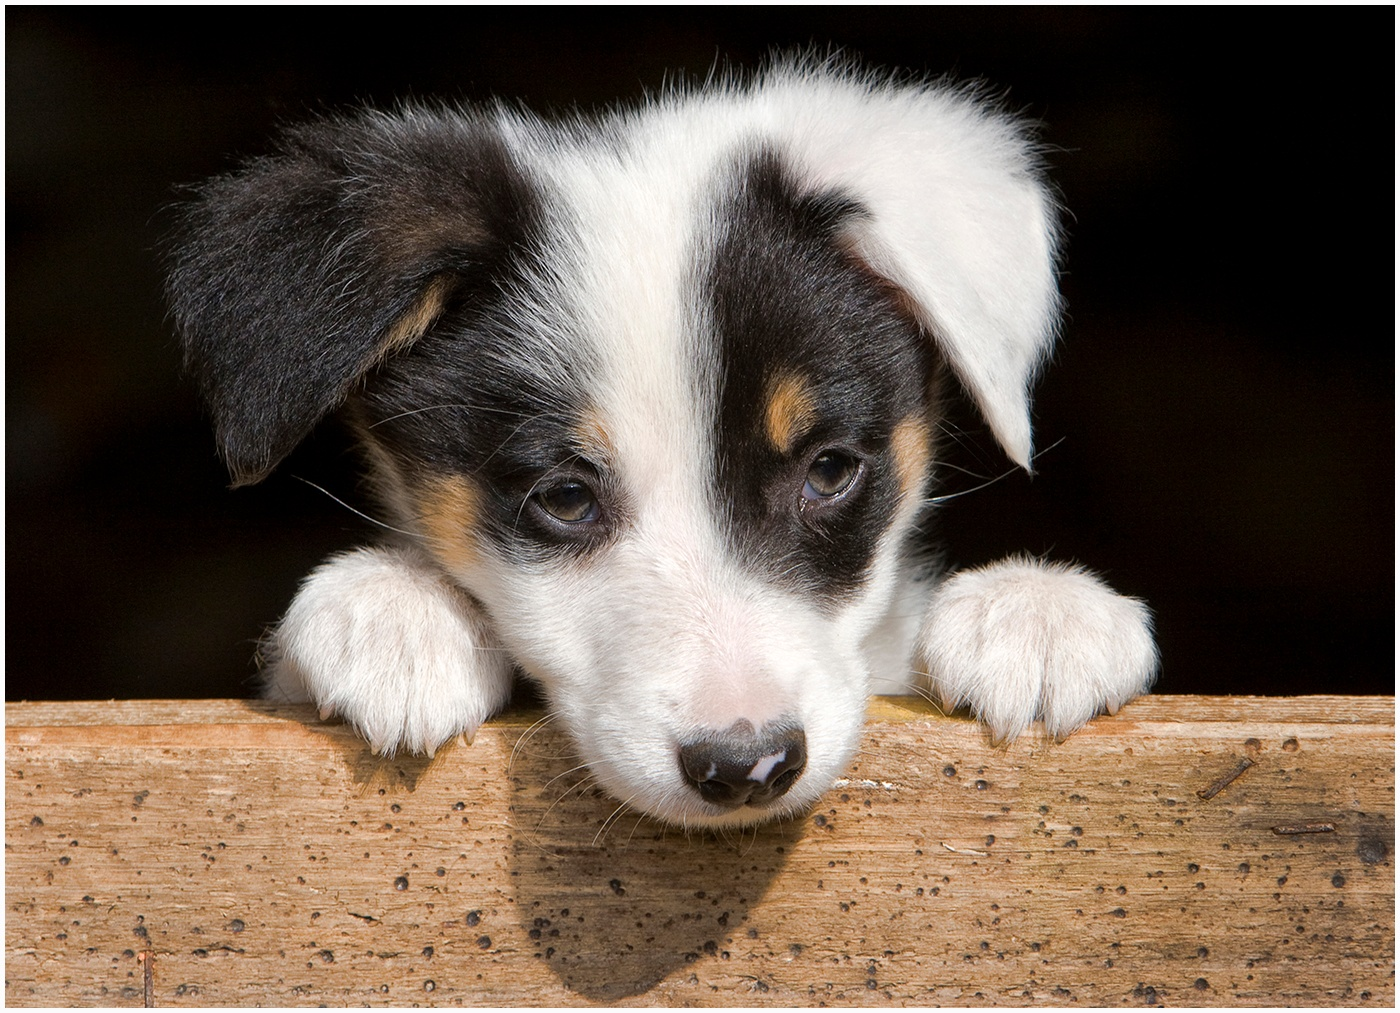 Sheepdog puppy by Rory